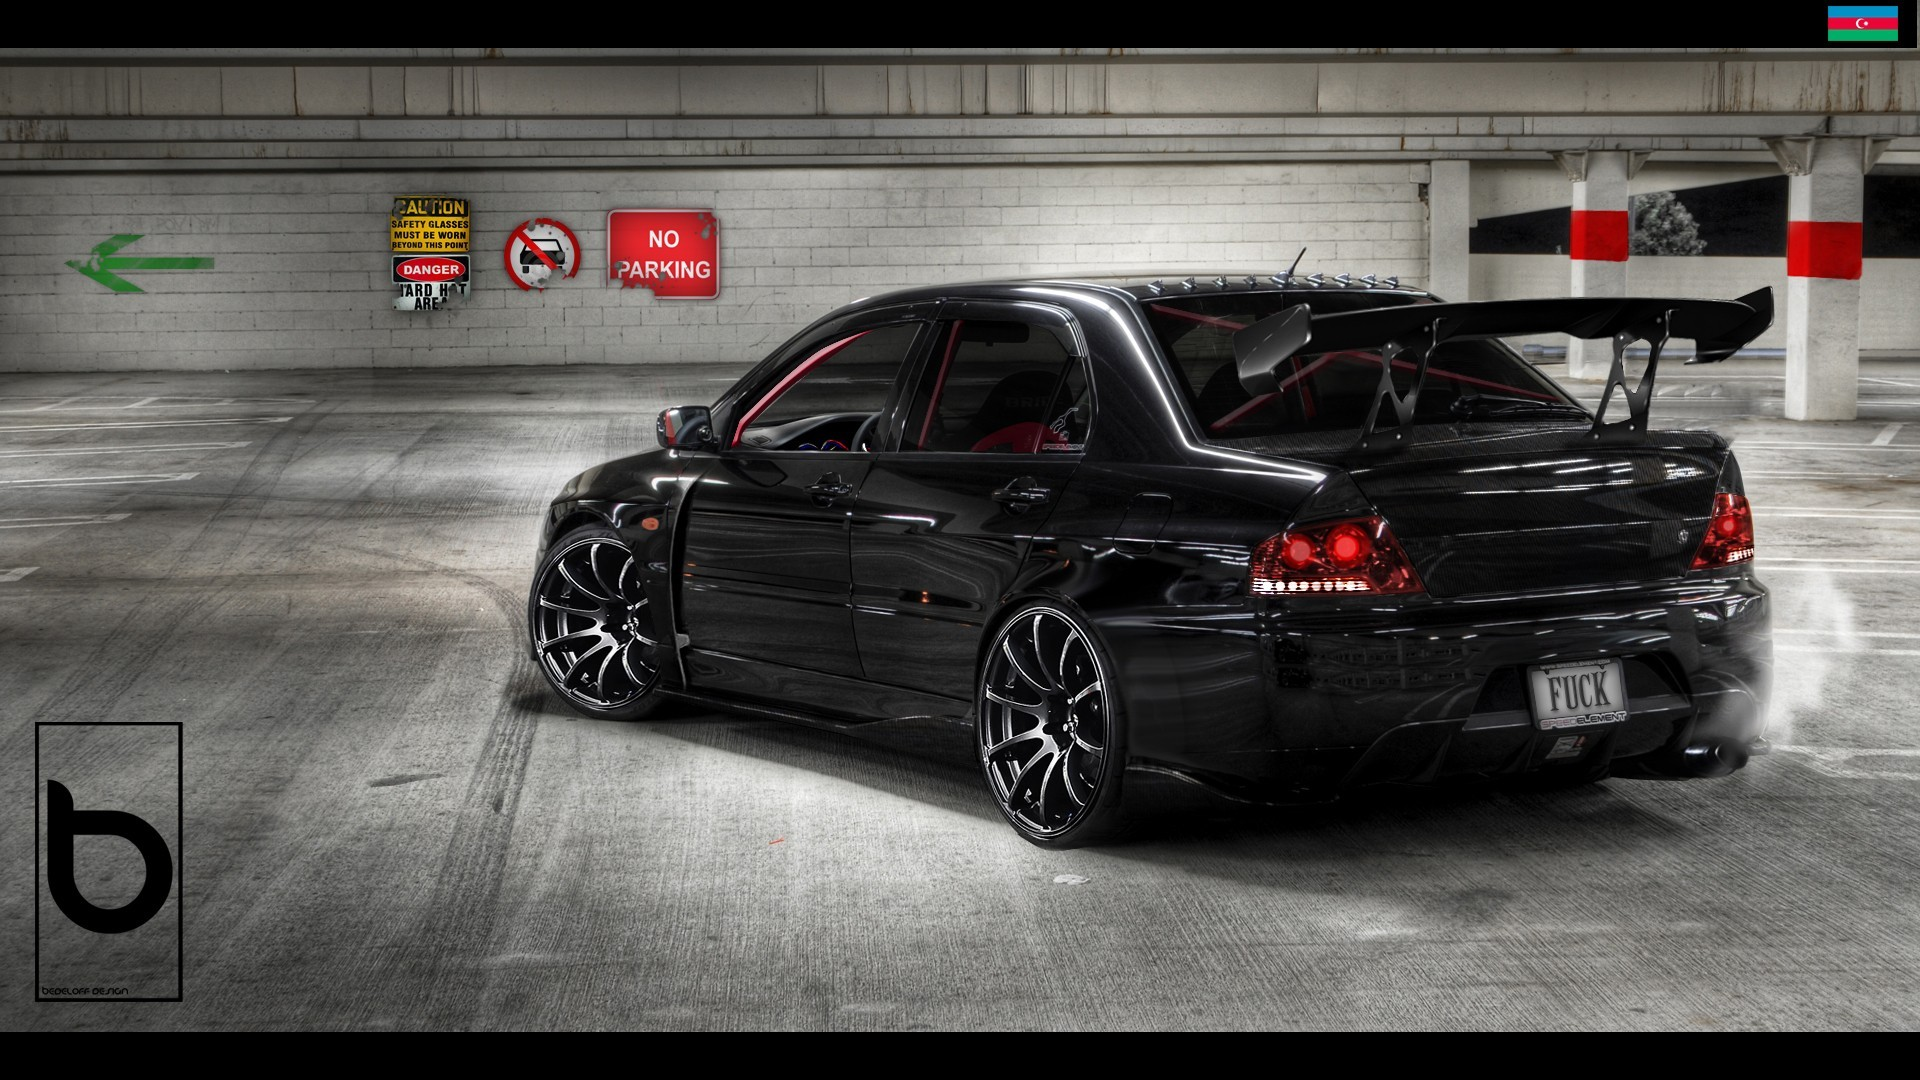 Retro Car Home Wallpaper Car Jdm Mitsubishi Mitsubishi Lancer Wallpapers Hd